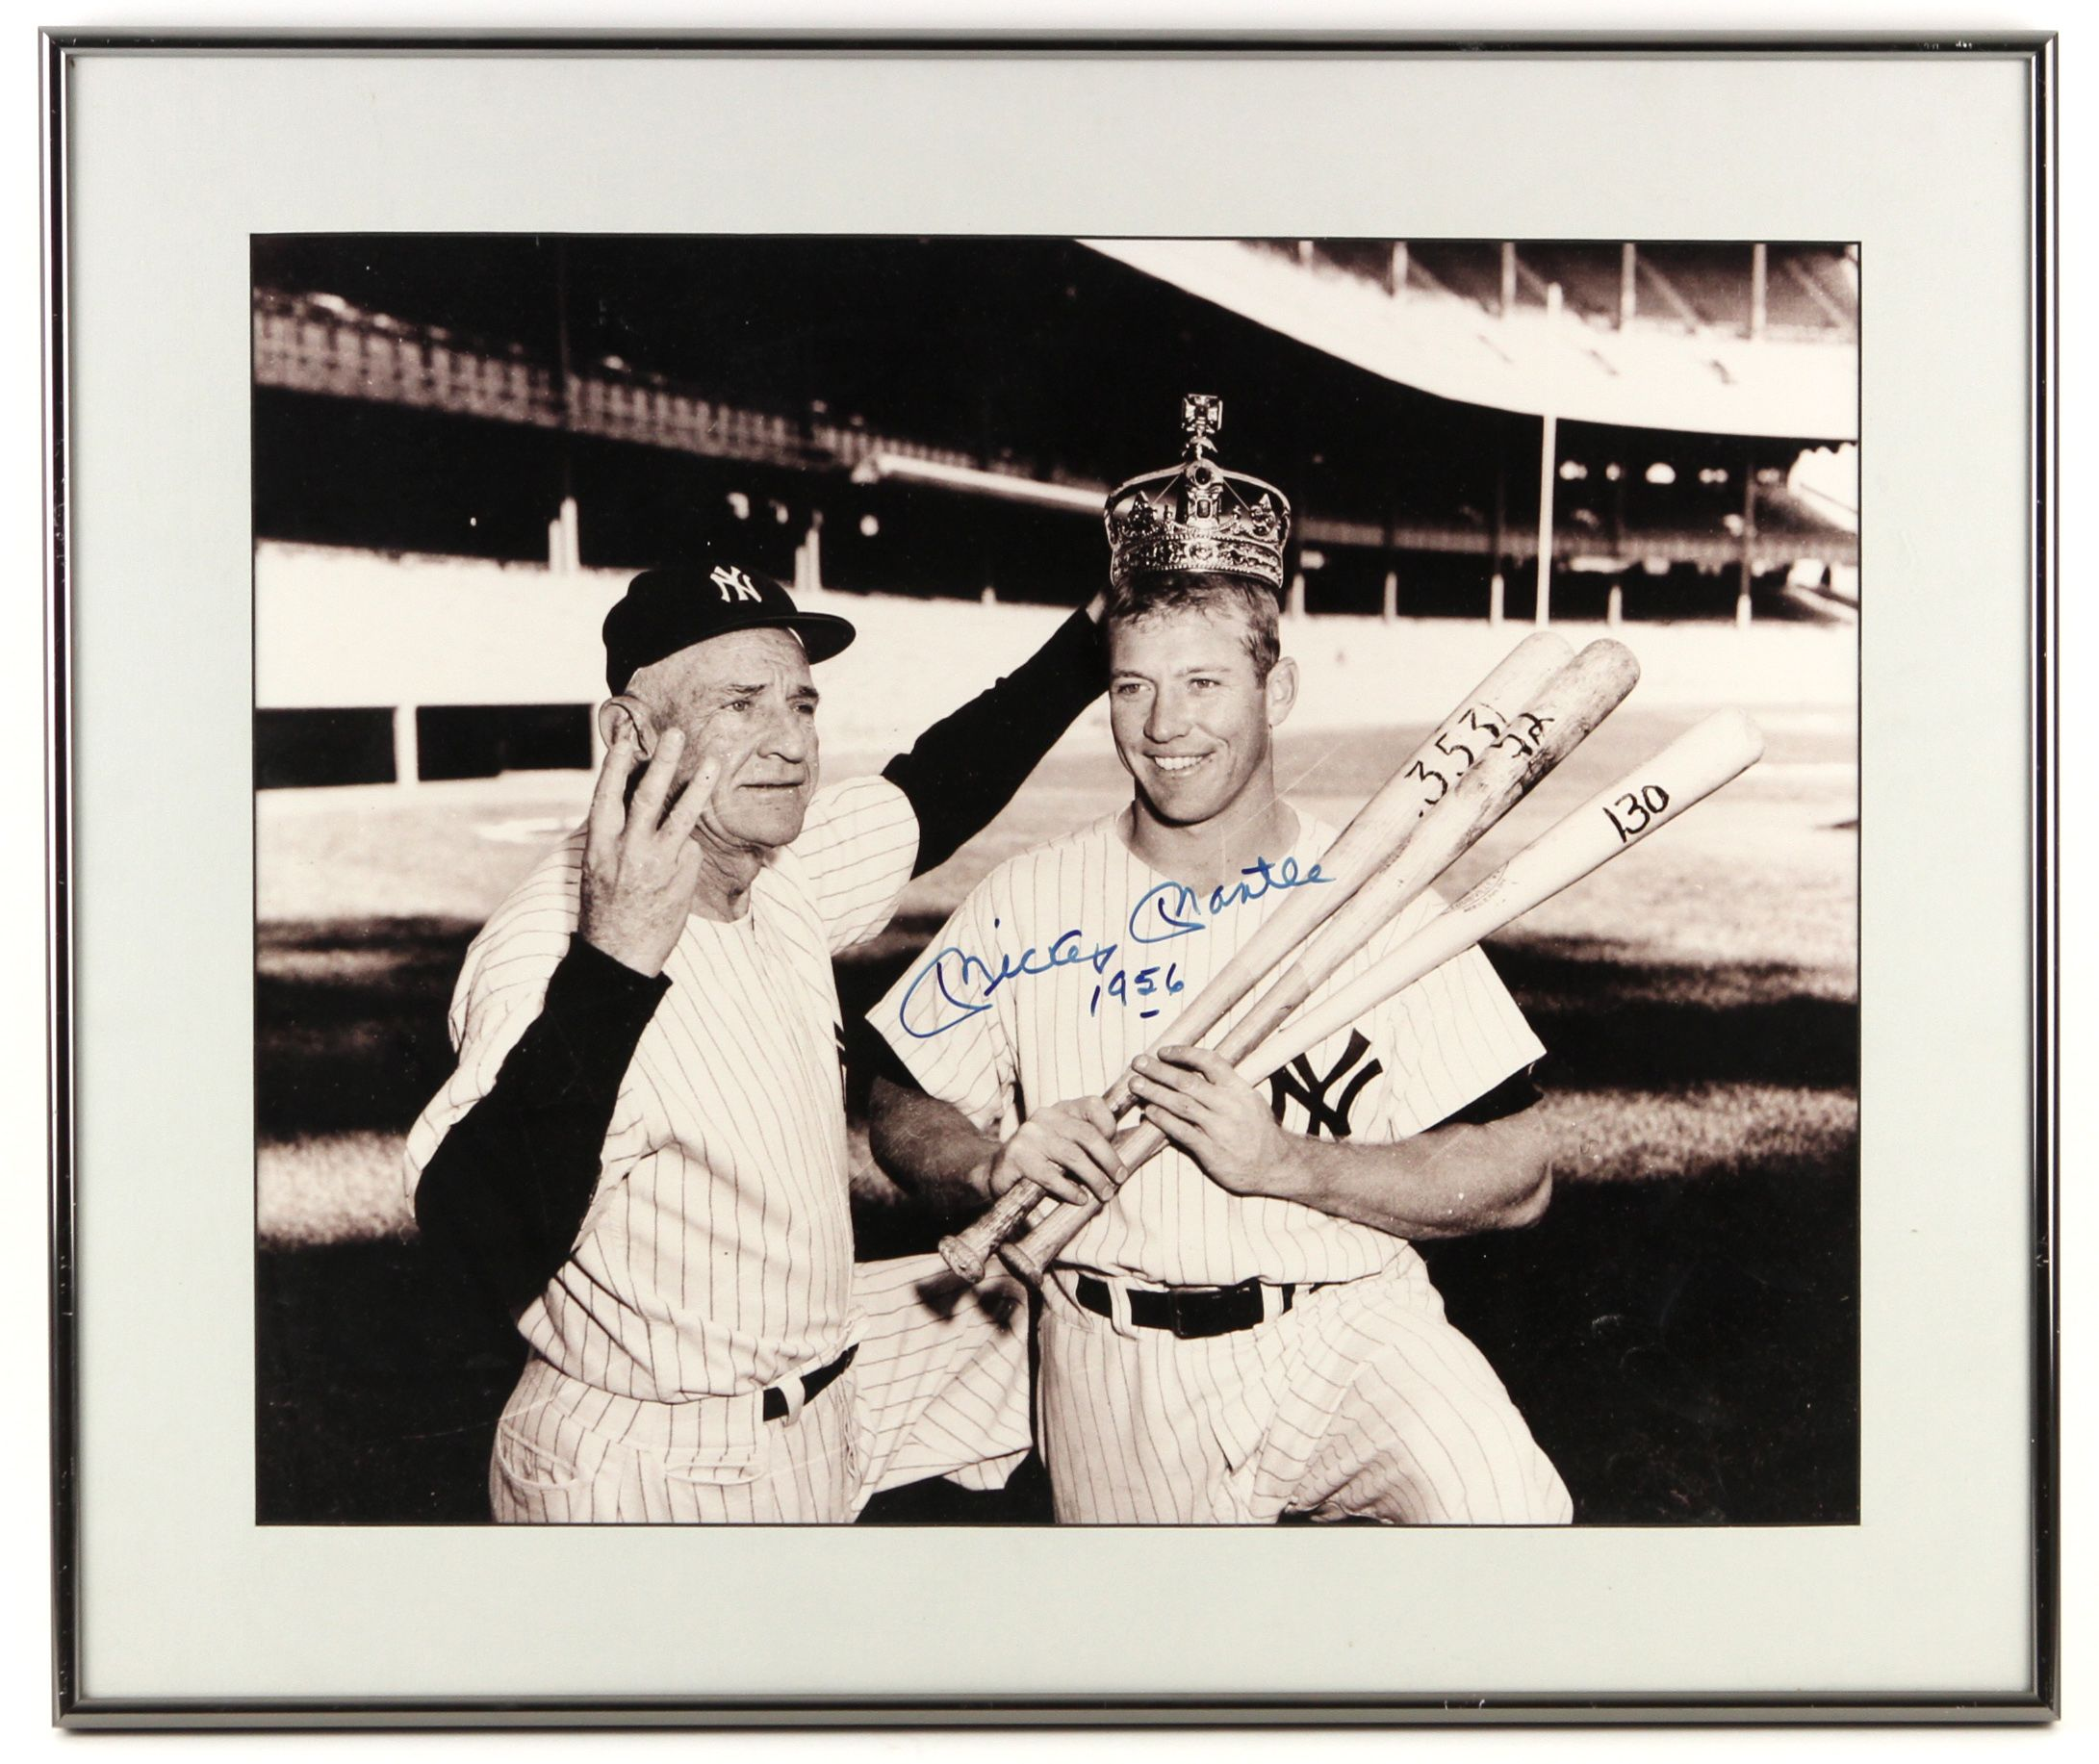 9186a52bc44 Lot Detail - 1956 circa Signed Framed Mickey Mantle Triple Crown ...